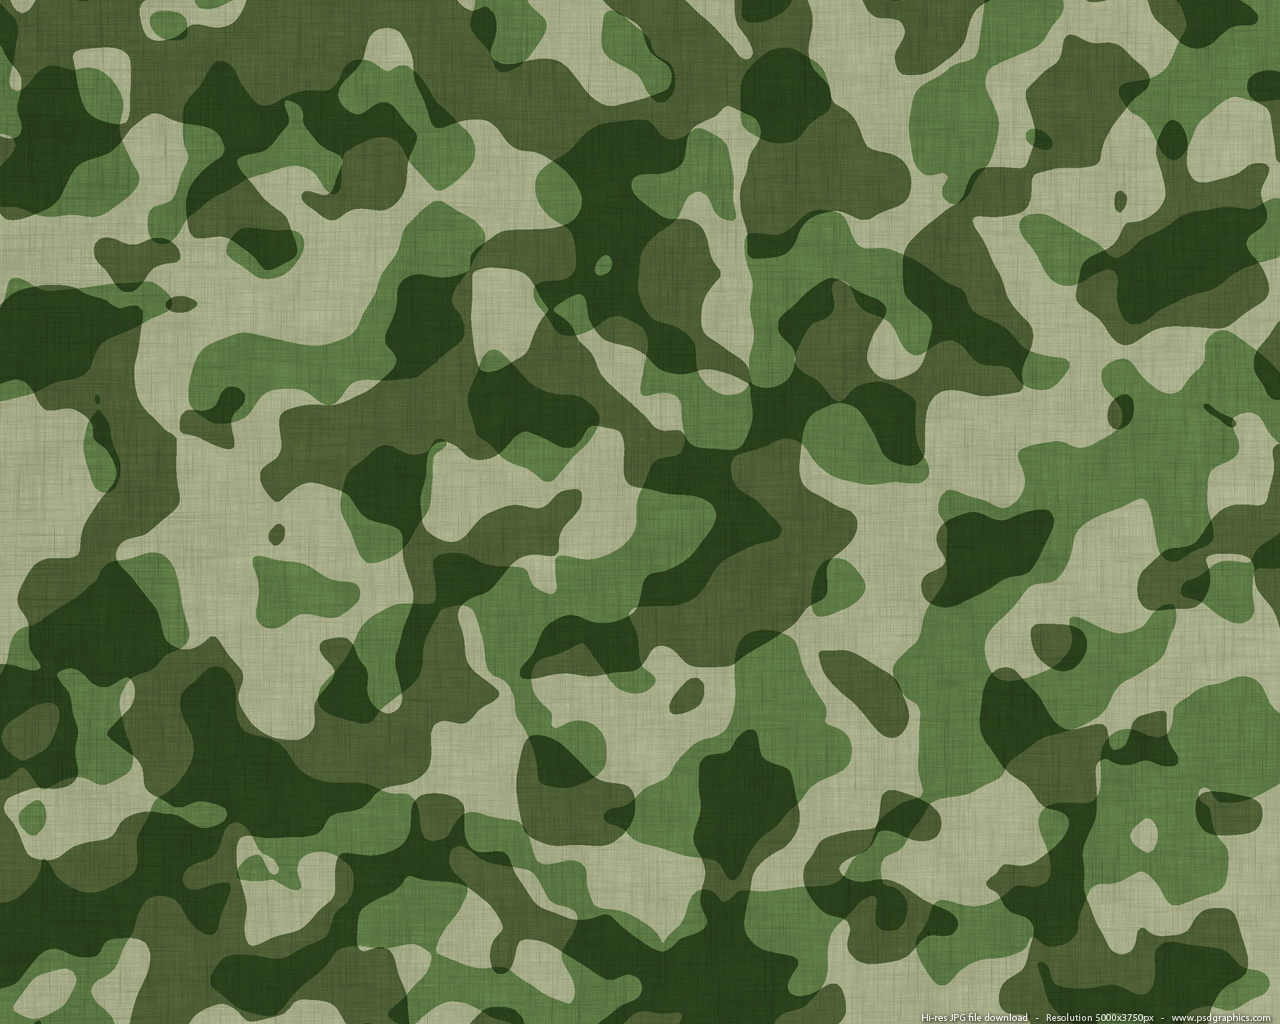 Military camouflage pattern PSDGraphics 1280x1024